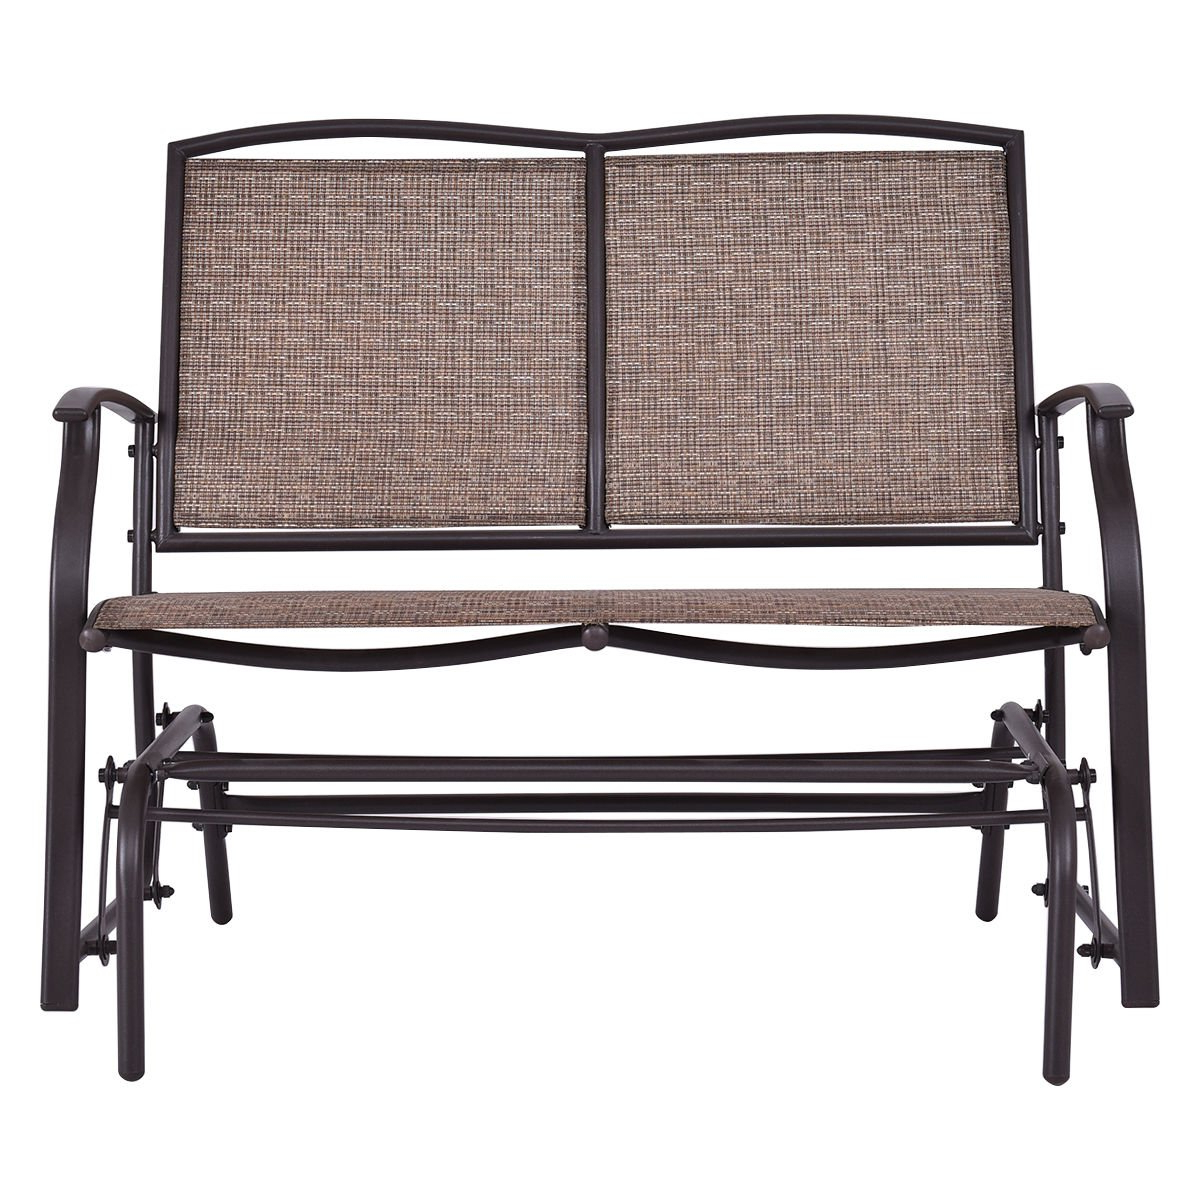 Fashionable Amazon : Patio Glider Rocking Bench Double 2 Person Within Iron Double Patio Glider Benches (Gallery 15 of 30)